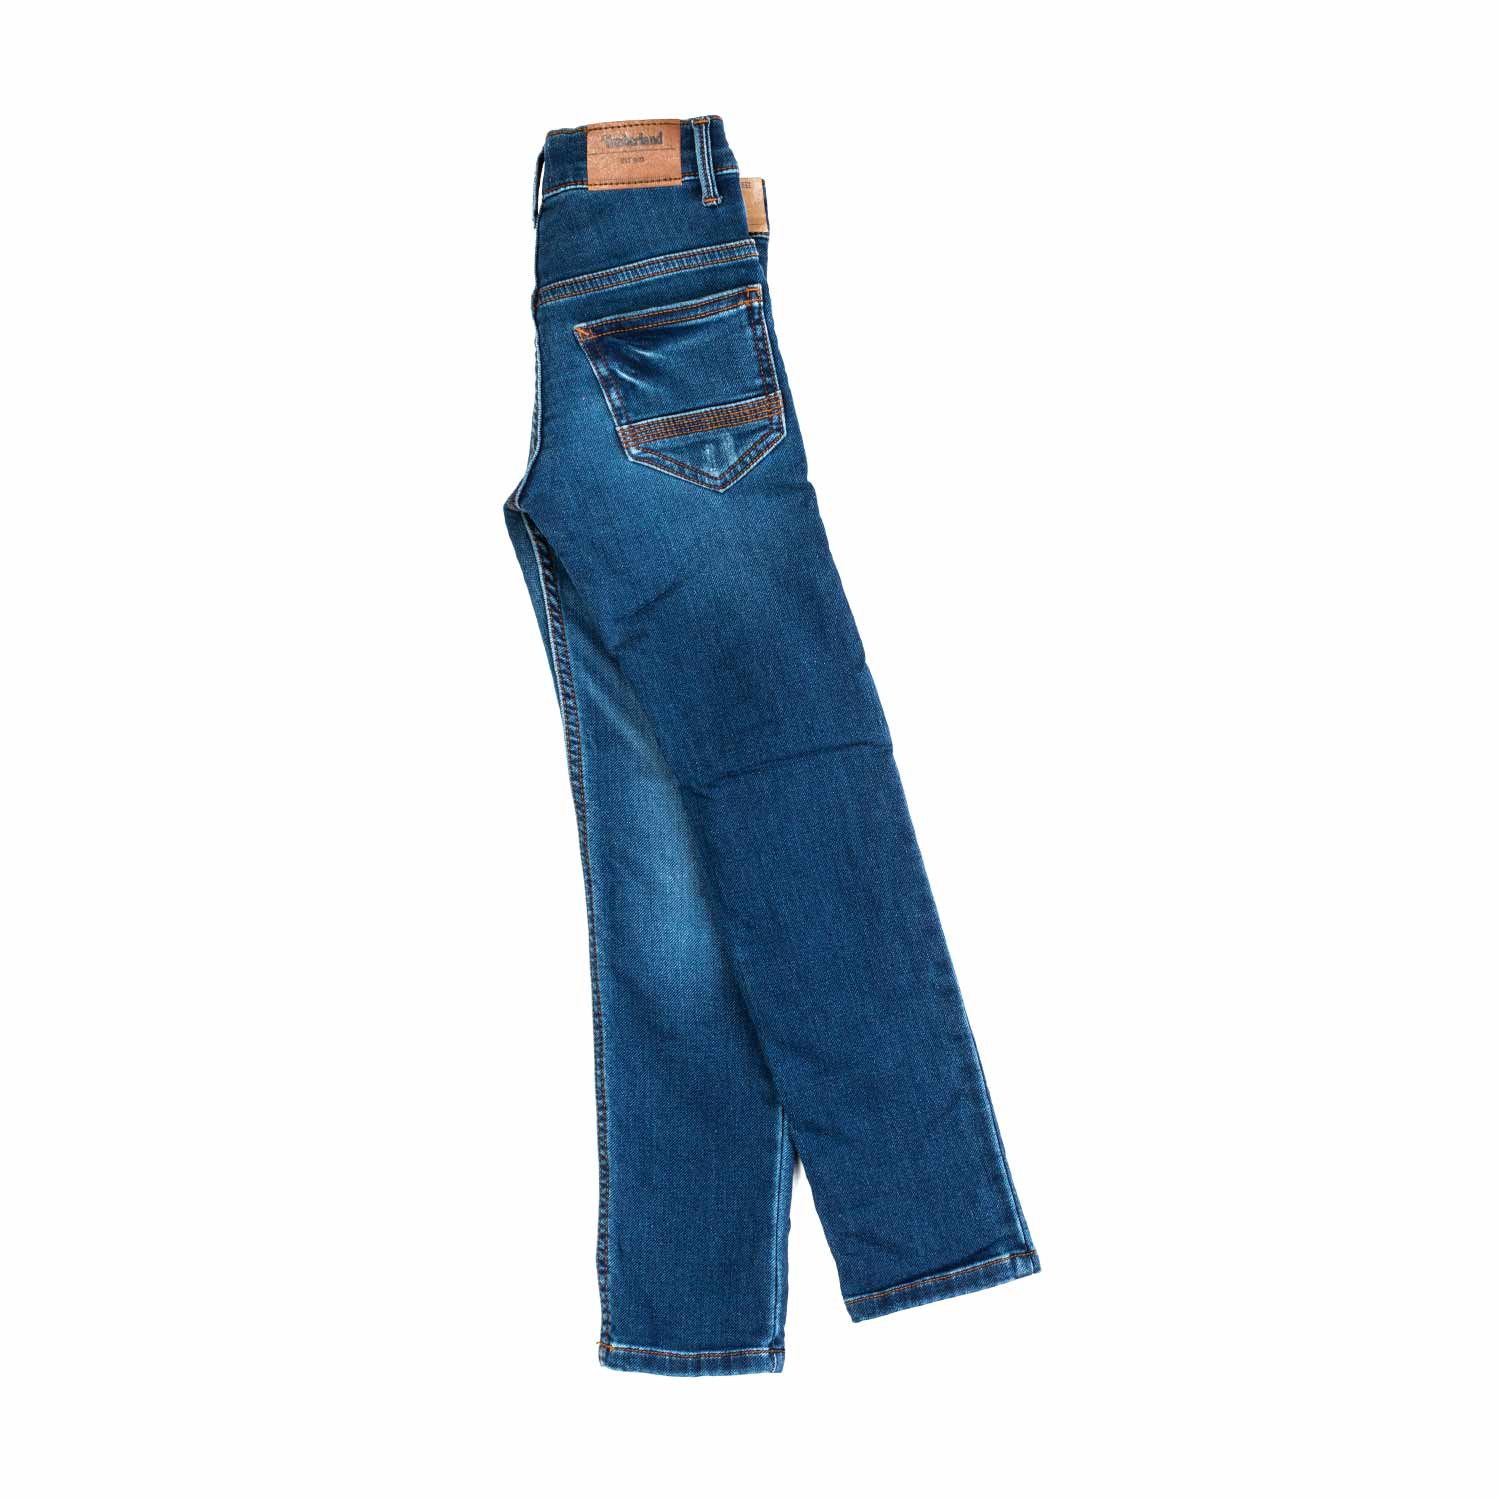 73f25b01ca6 Timberland - Little Boy Blue Denim Jeans - annameglio.com shop online